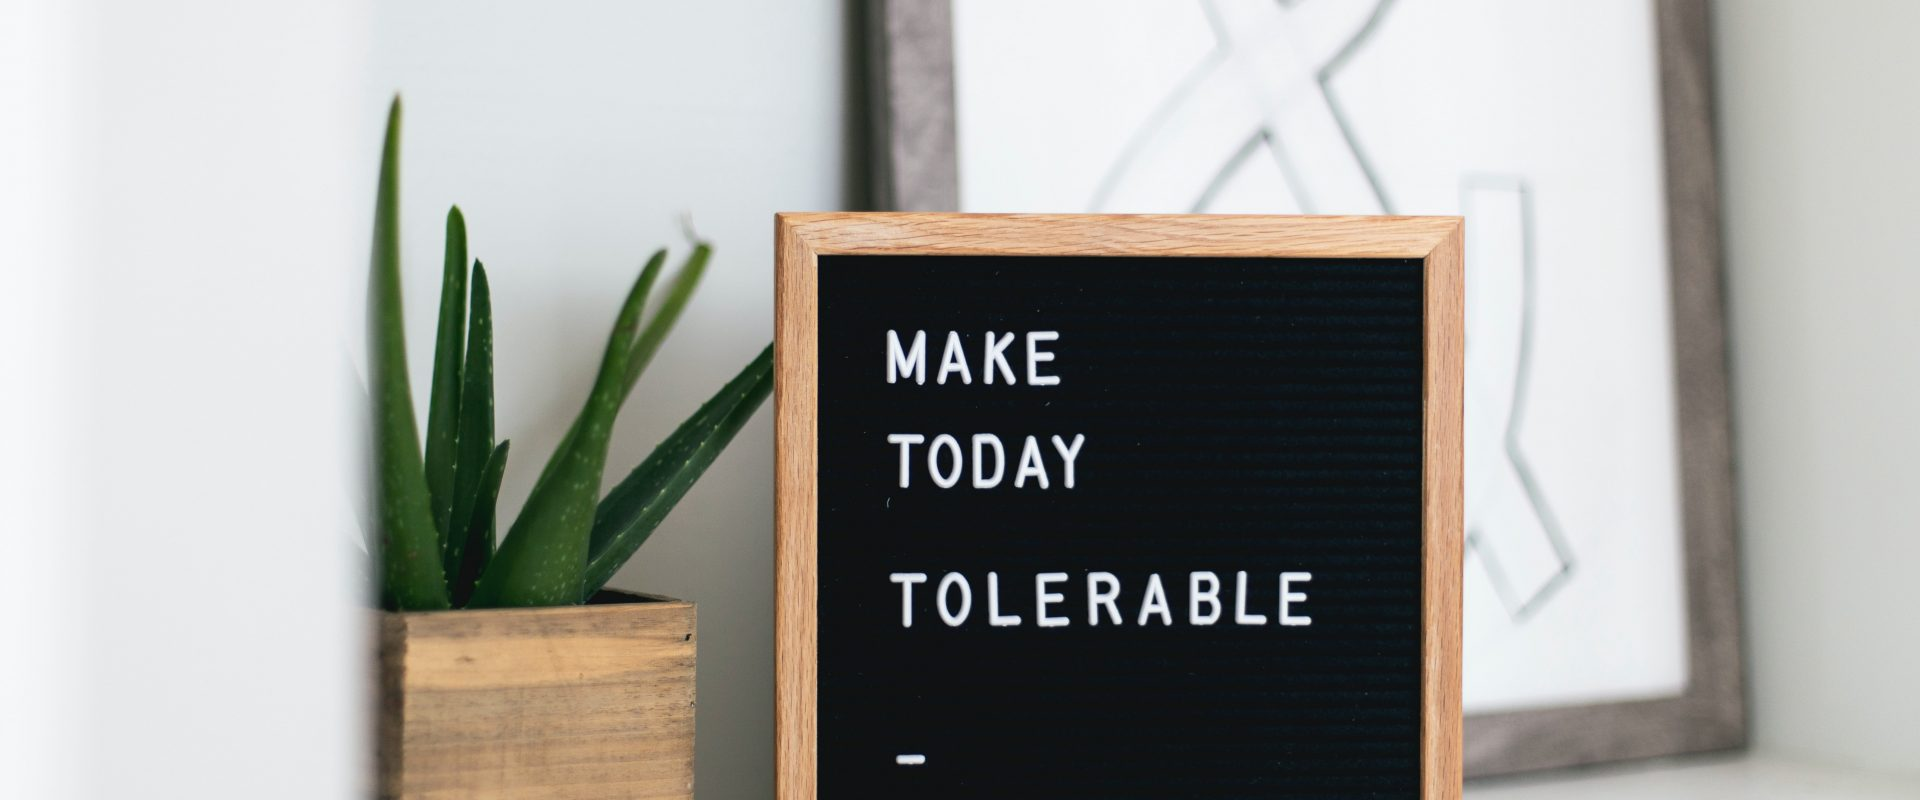 Make today tolerable